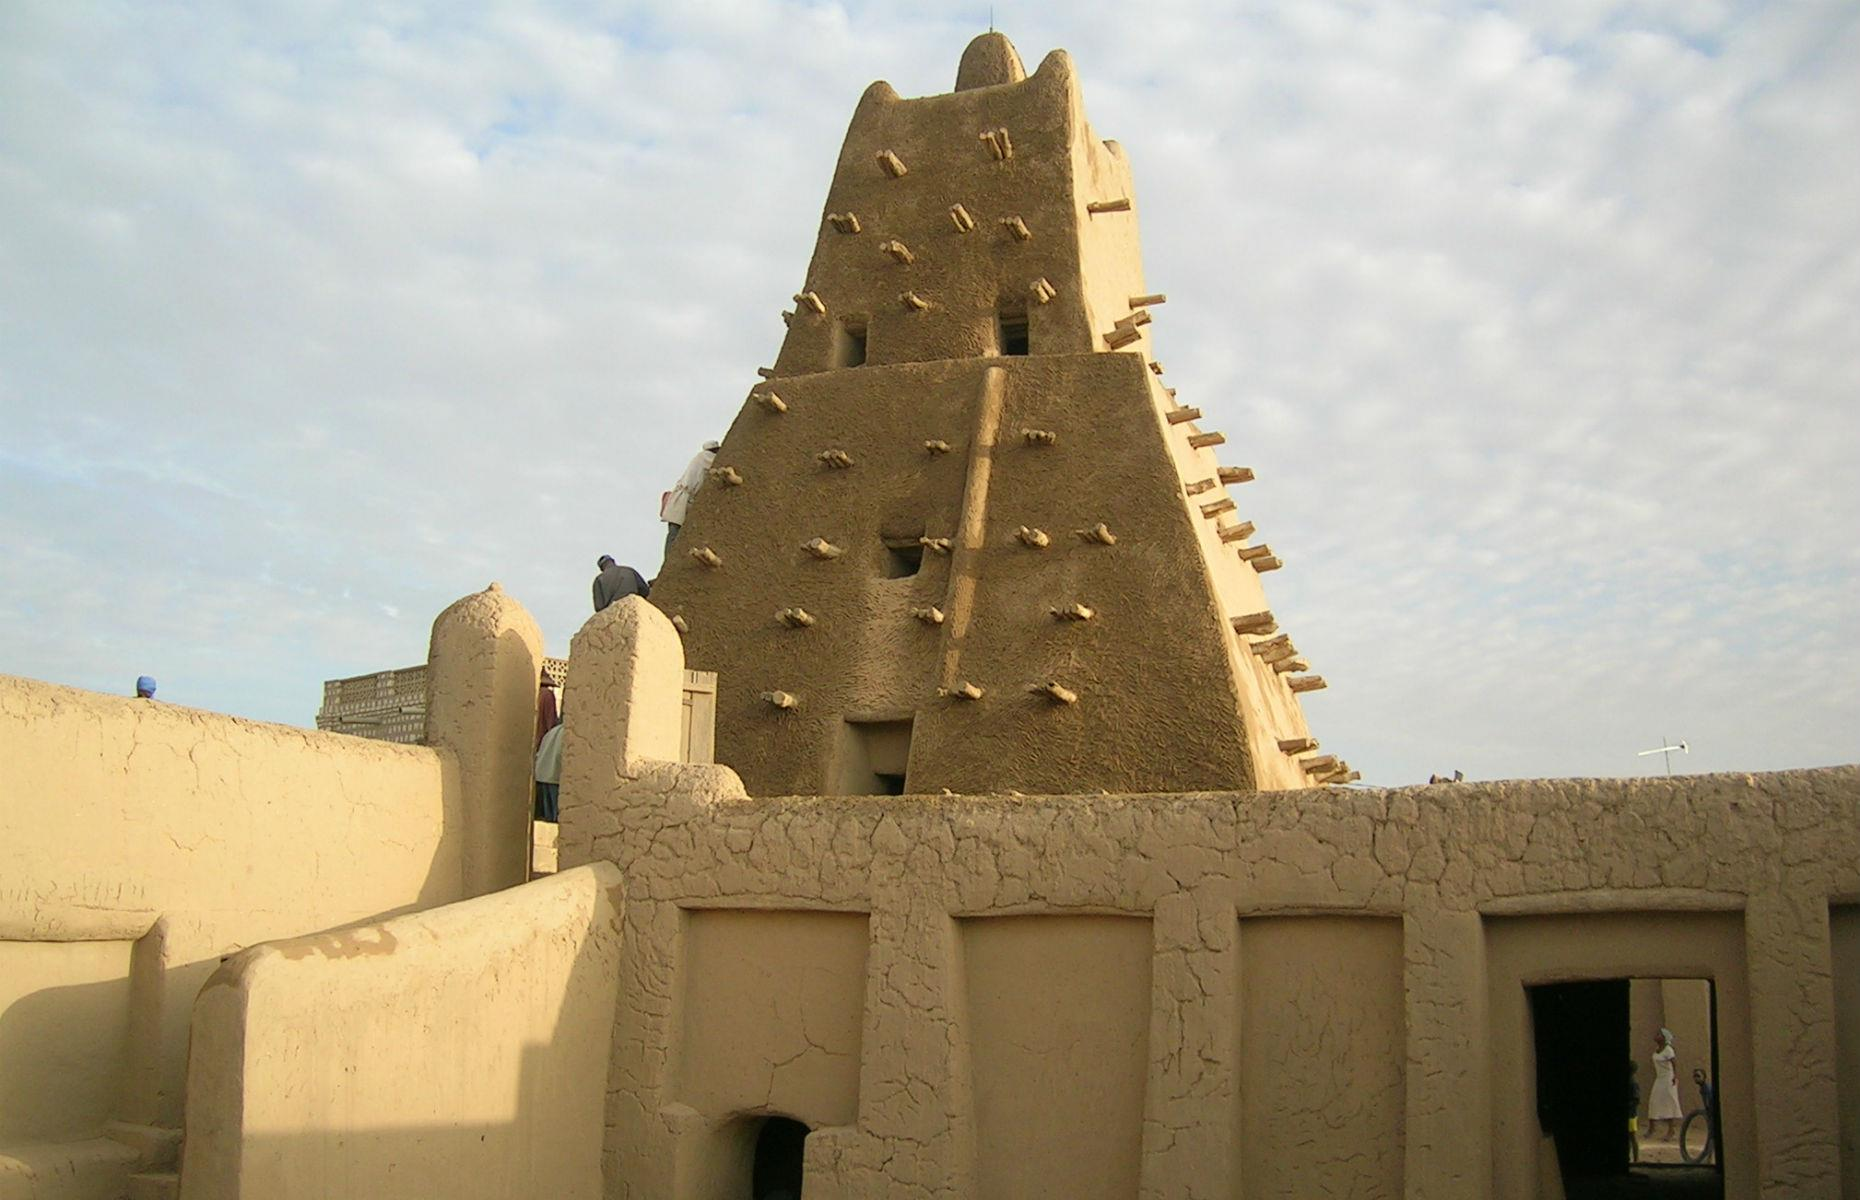 "Slide 29 of 53: Timbuktu is one of Africa's most historically significant cities: home to the Koranic Sankore University and other madrasas, Timbuktu was an intellectual and spiritual capital, and was also central to the promotion of Islam in Africa in the 15th and 16th centuries. Its three great mosques are said to ""recall Timbuktu's golden age"". However, despite being continuously restored, these monuments are under threat: armed conflict in the region, illegal trafficking of cultural objects by looters and dealers, and suicide bombings are just some of the dangers that Timbuktu faces."